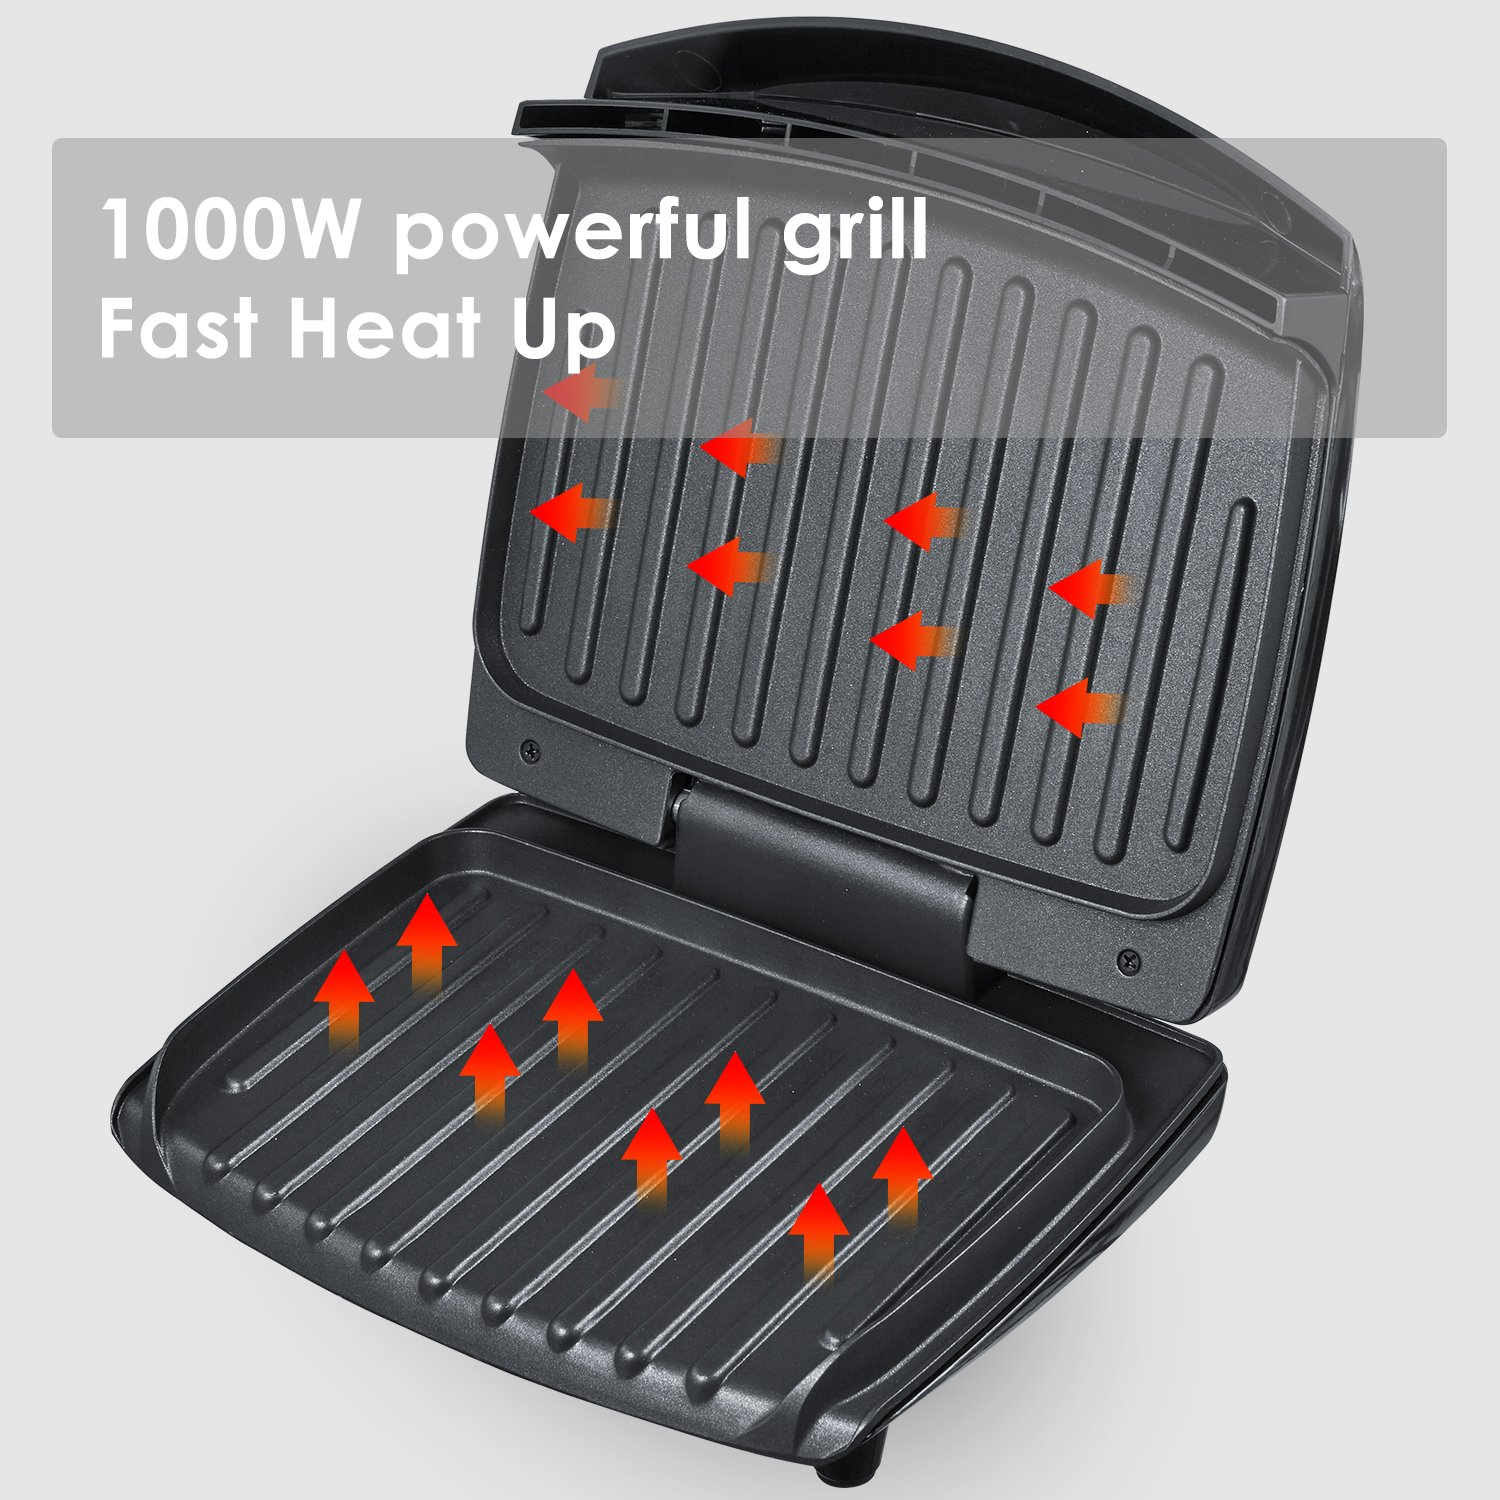 Aicok Panini Press 1000W Fast Cooking Non-Stick Sandwich Maker, 2-Serving Compact Indoor Grill with Drip Tray, Black by AICOK (Image #4)